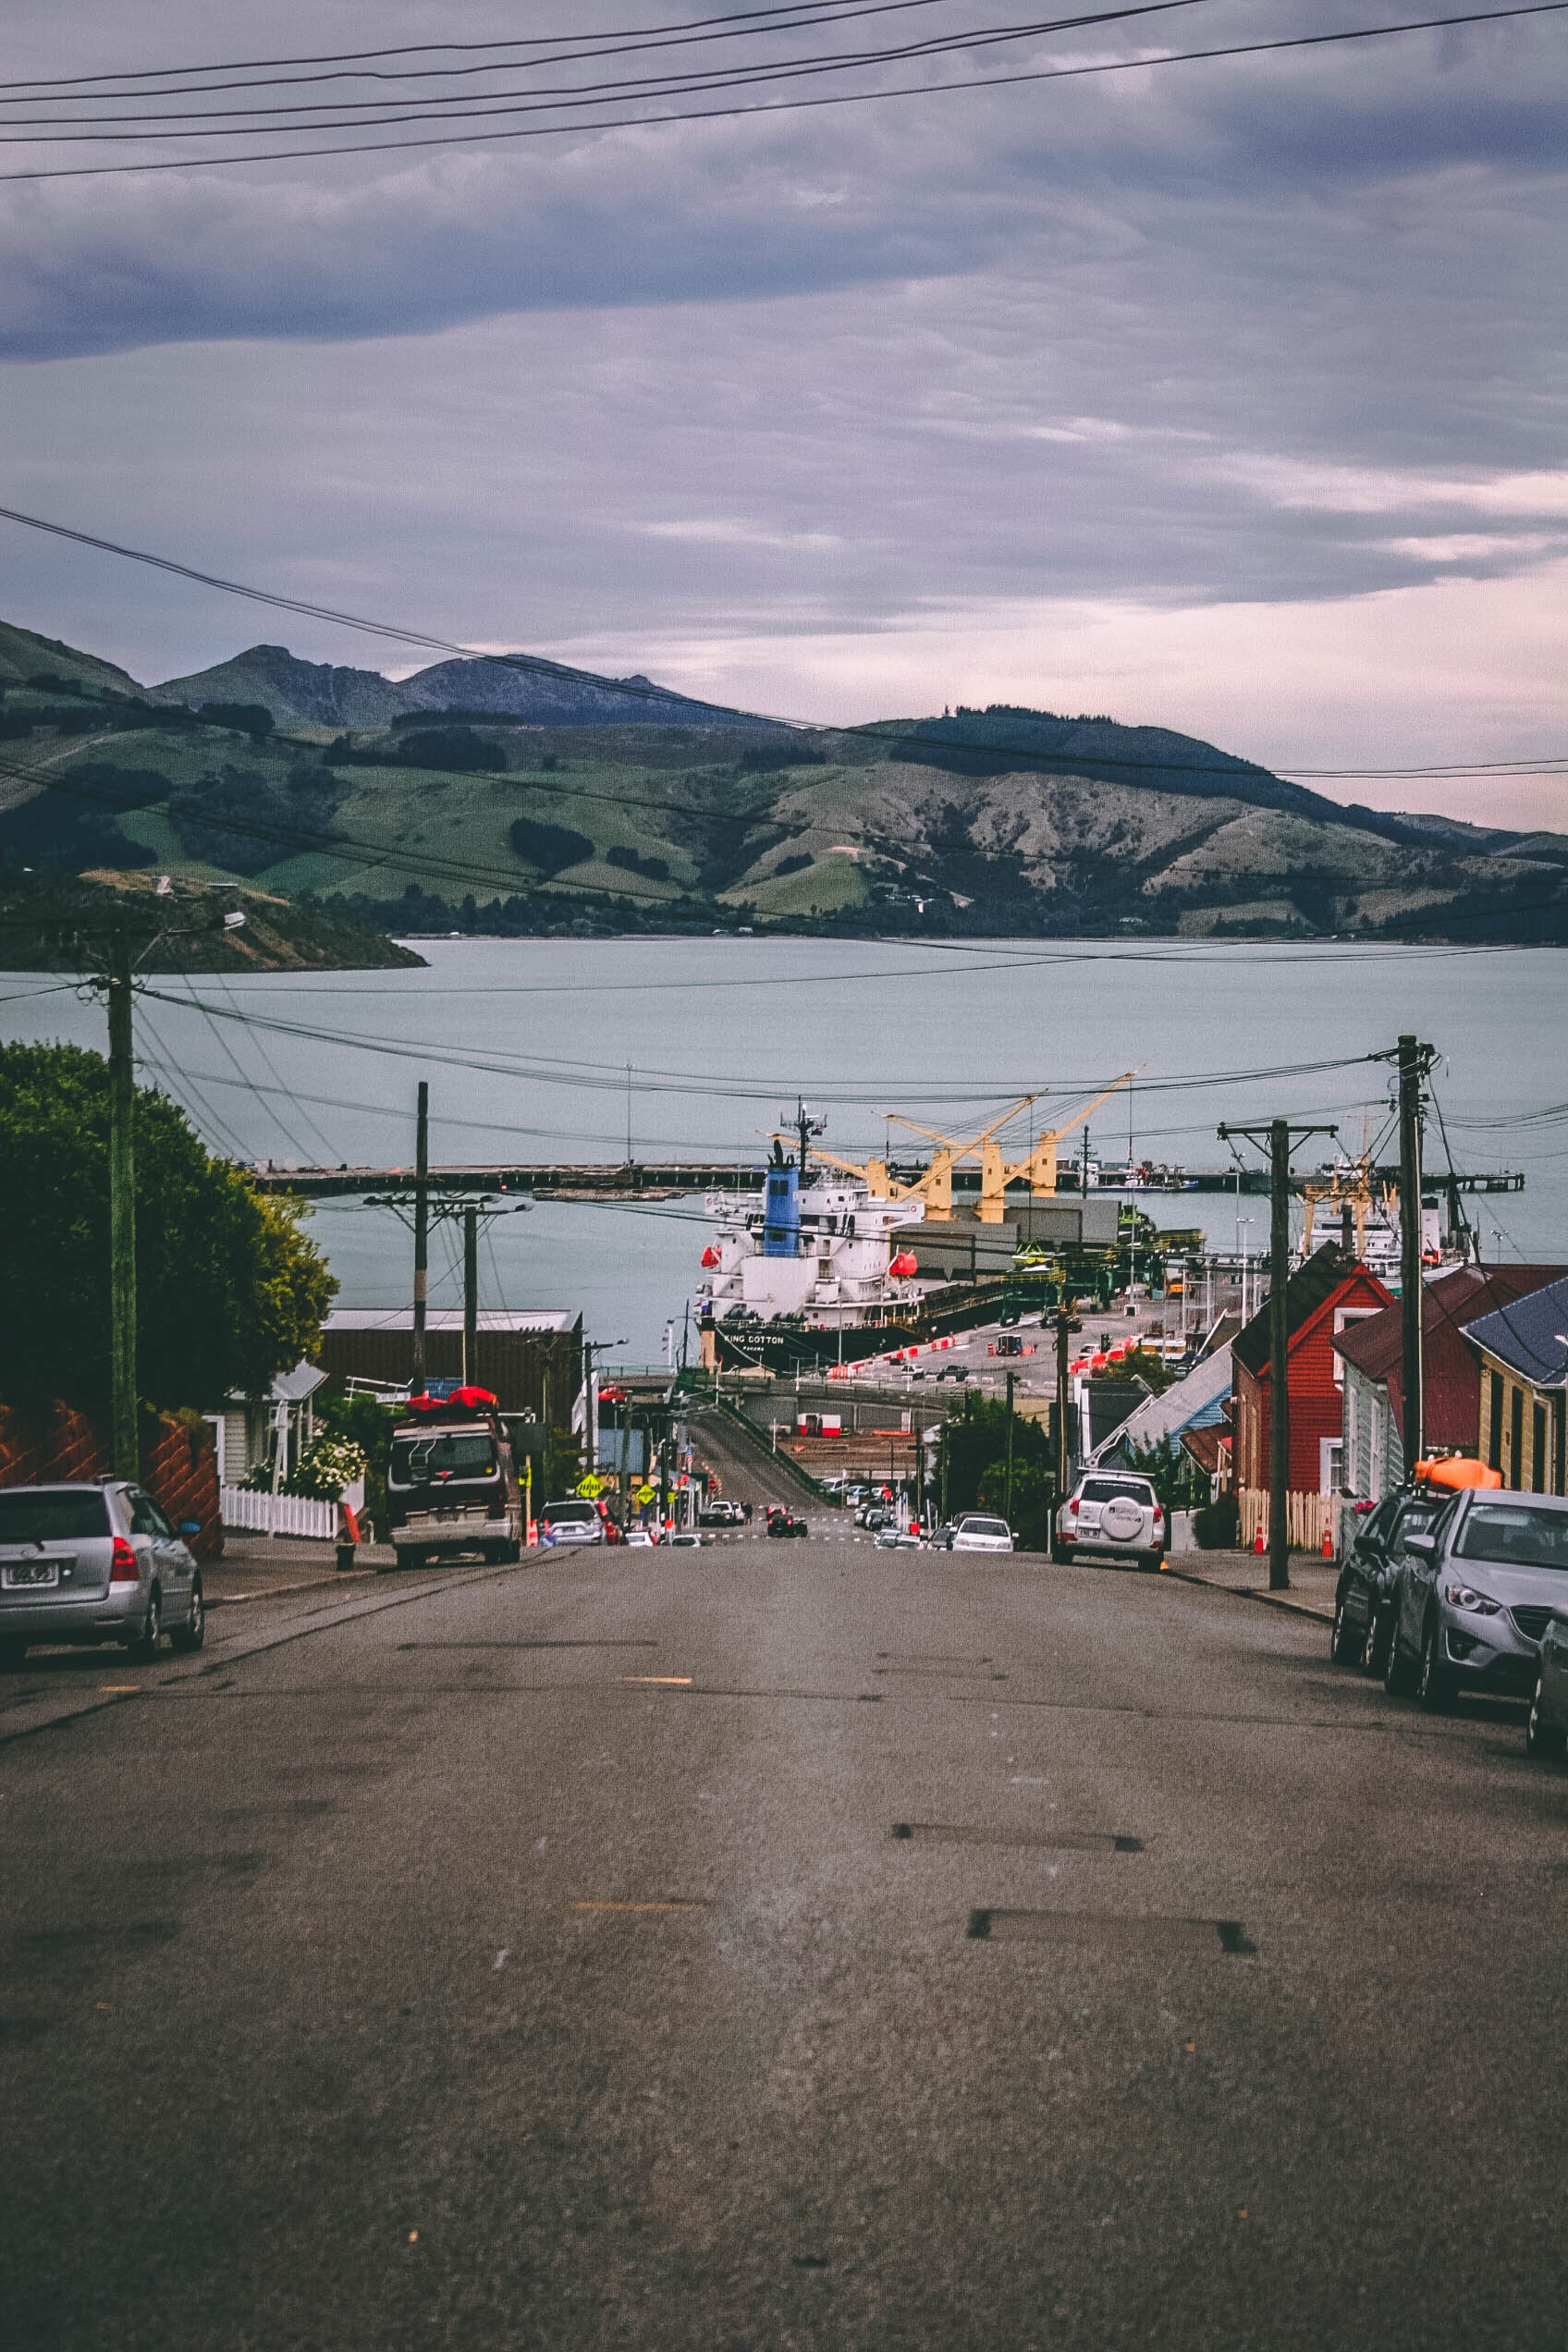 Landscape Photo of Houses Beside Road, Bay, Pier, Water, Vehicles, HQ Photo